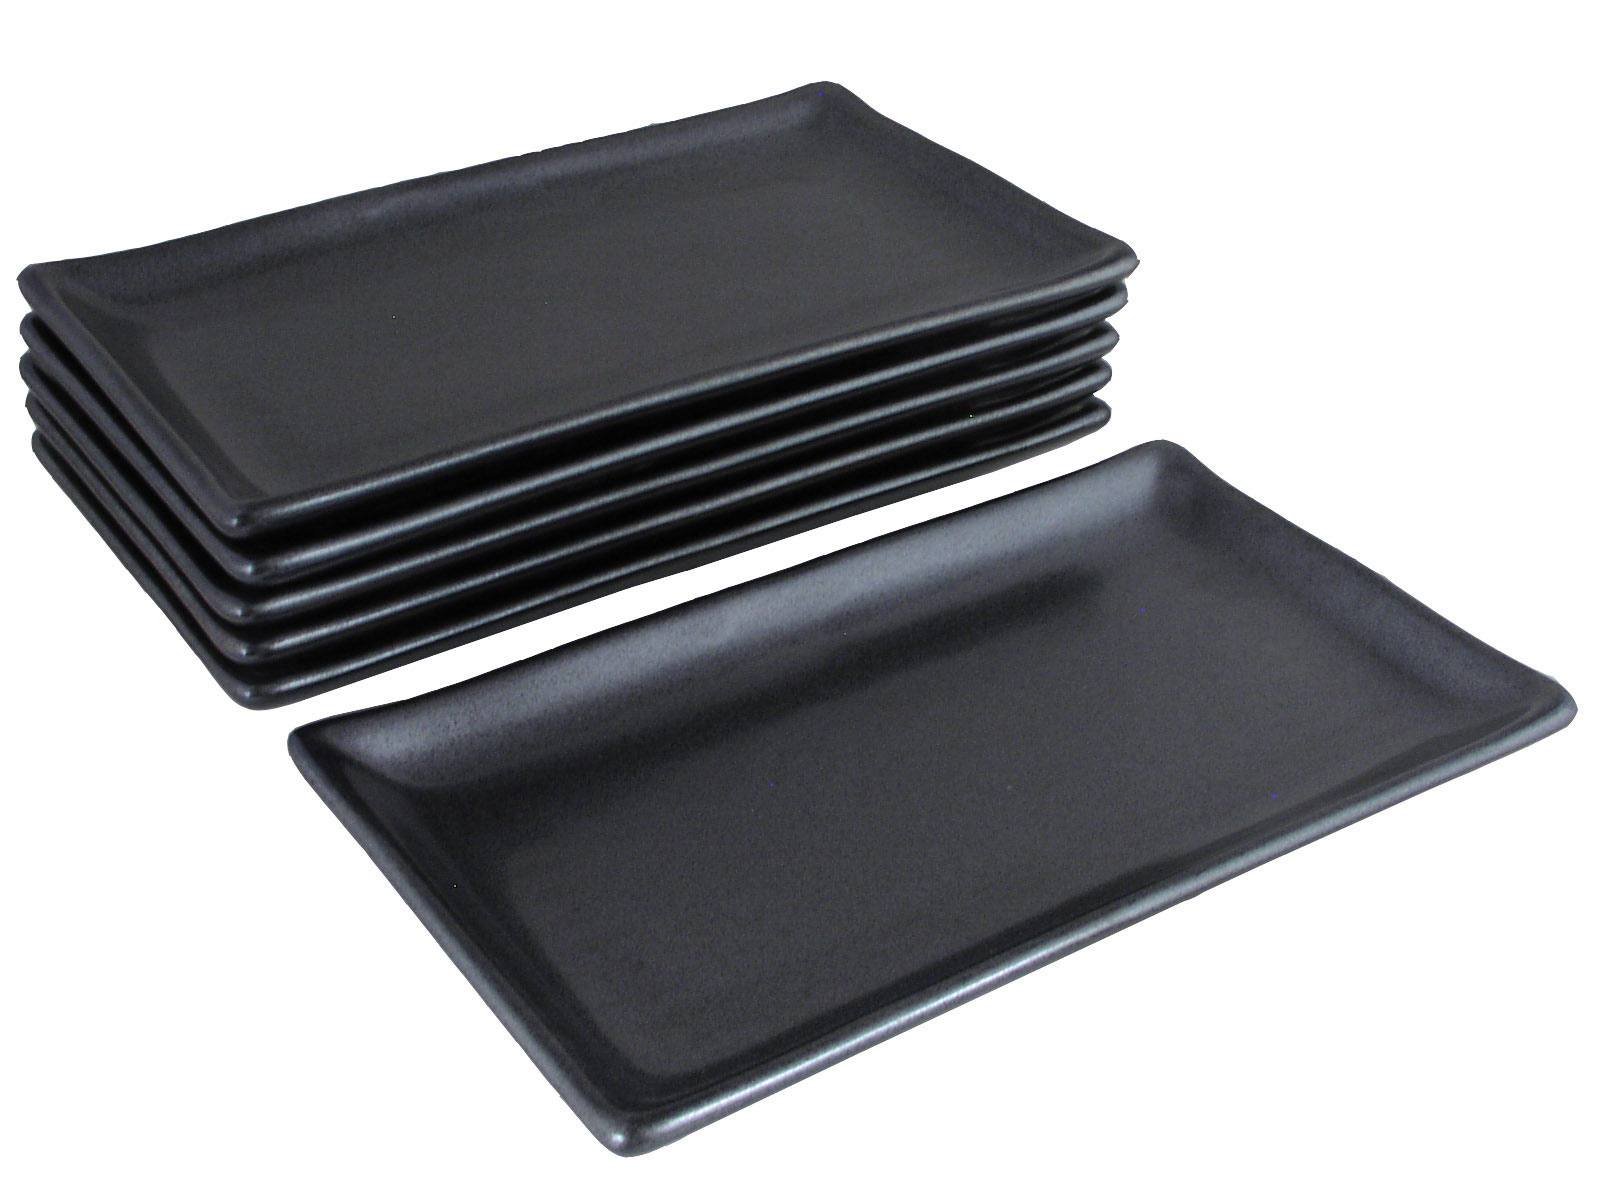 Black Alloy Collection Modern Rectangular Asian Plates Set